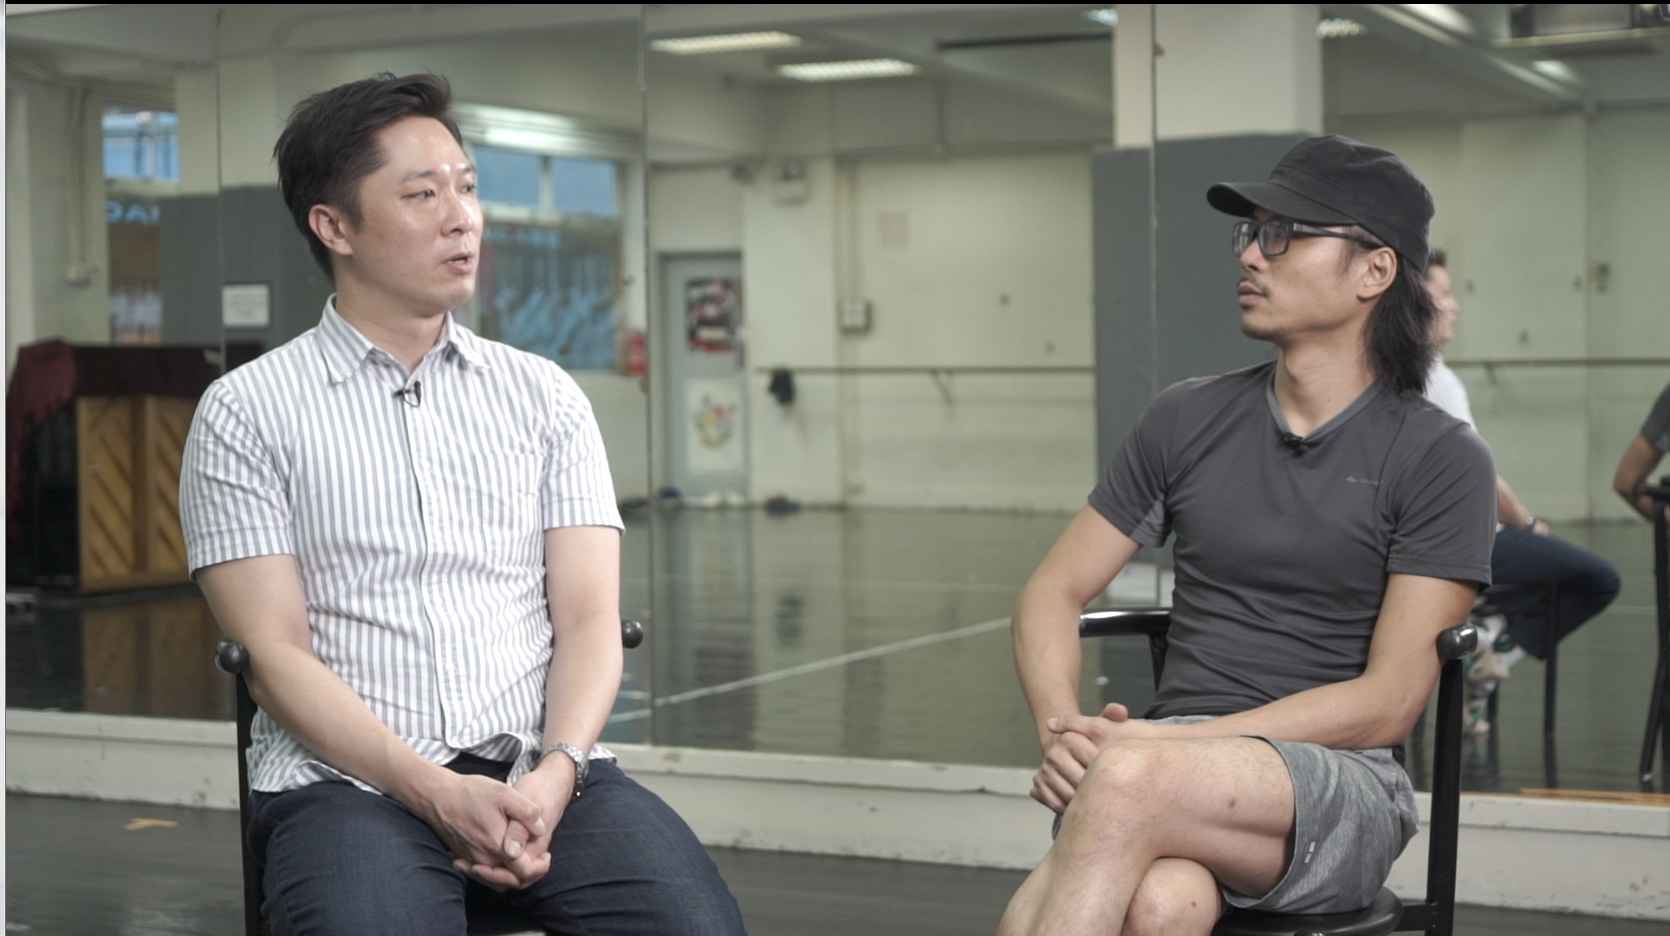 Alain Chiu (left) and Max Lee (right) reflect on their collaboration in one episode of the documentary series, which consists of interviews with past participating choreographers, dancers, advisors, students, teachers, and more